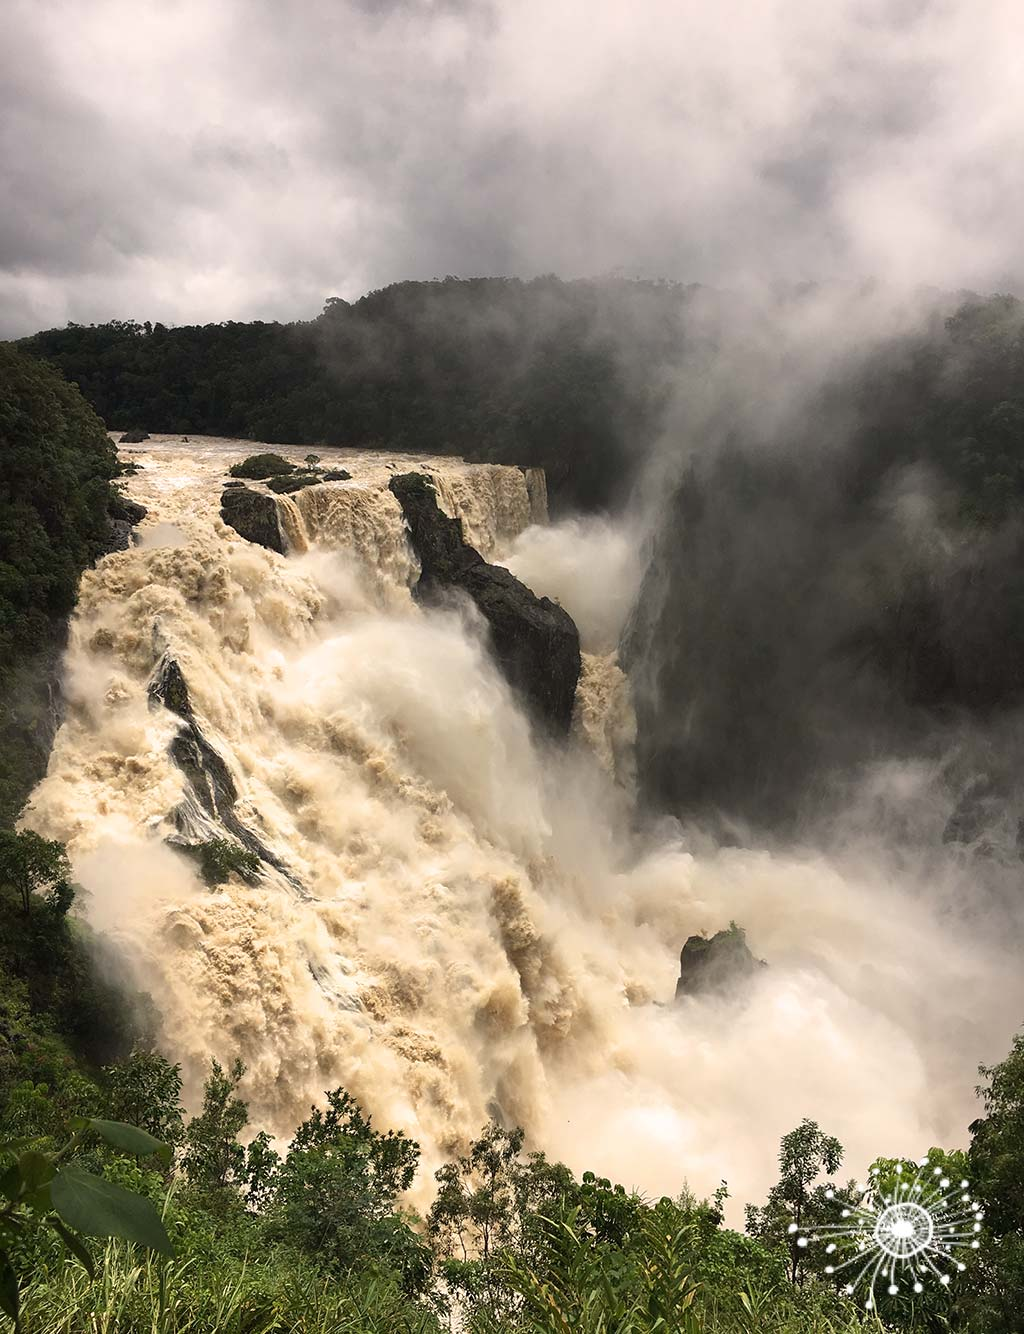 The Barron Falls in the Barron Gorge National Park